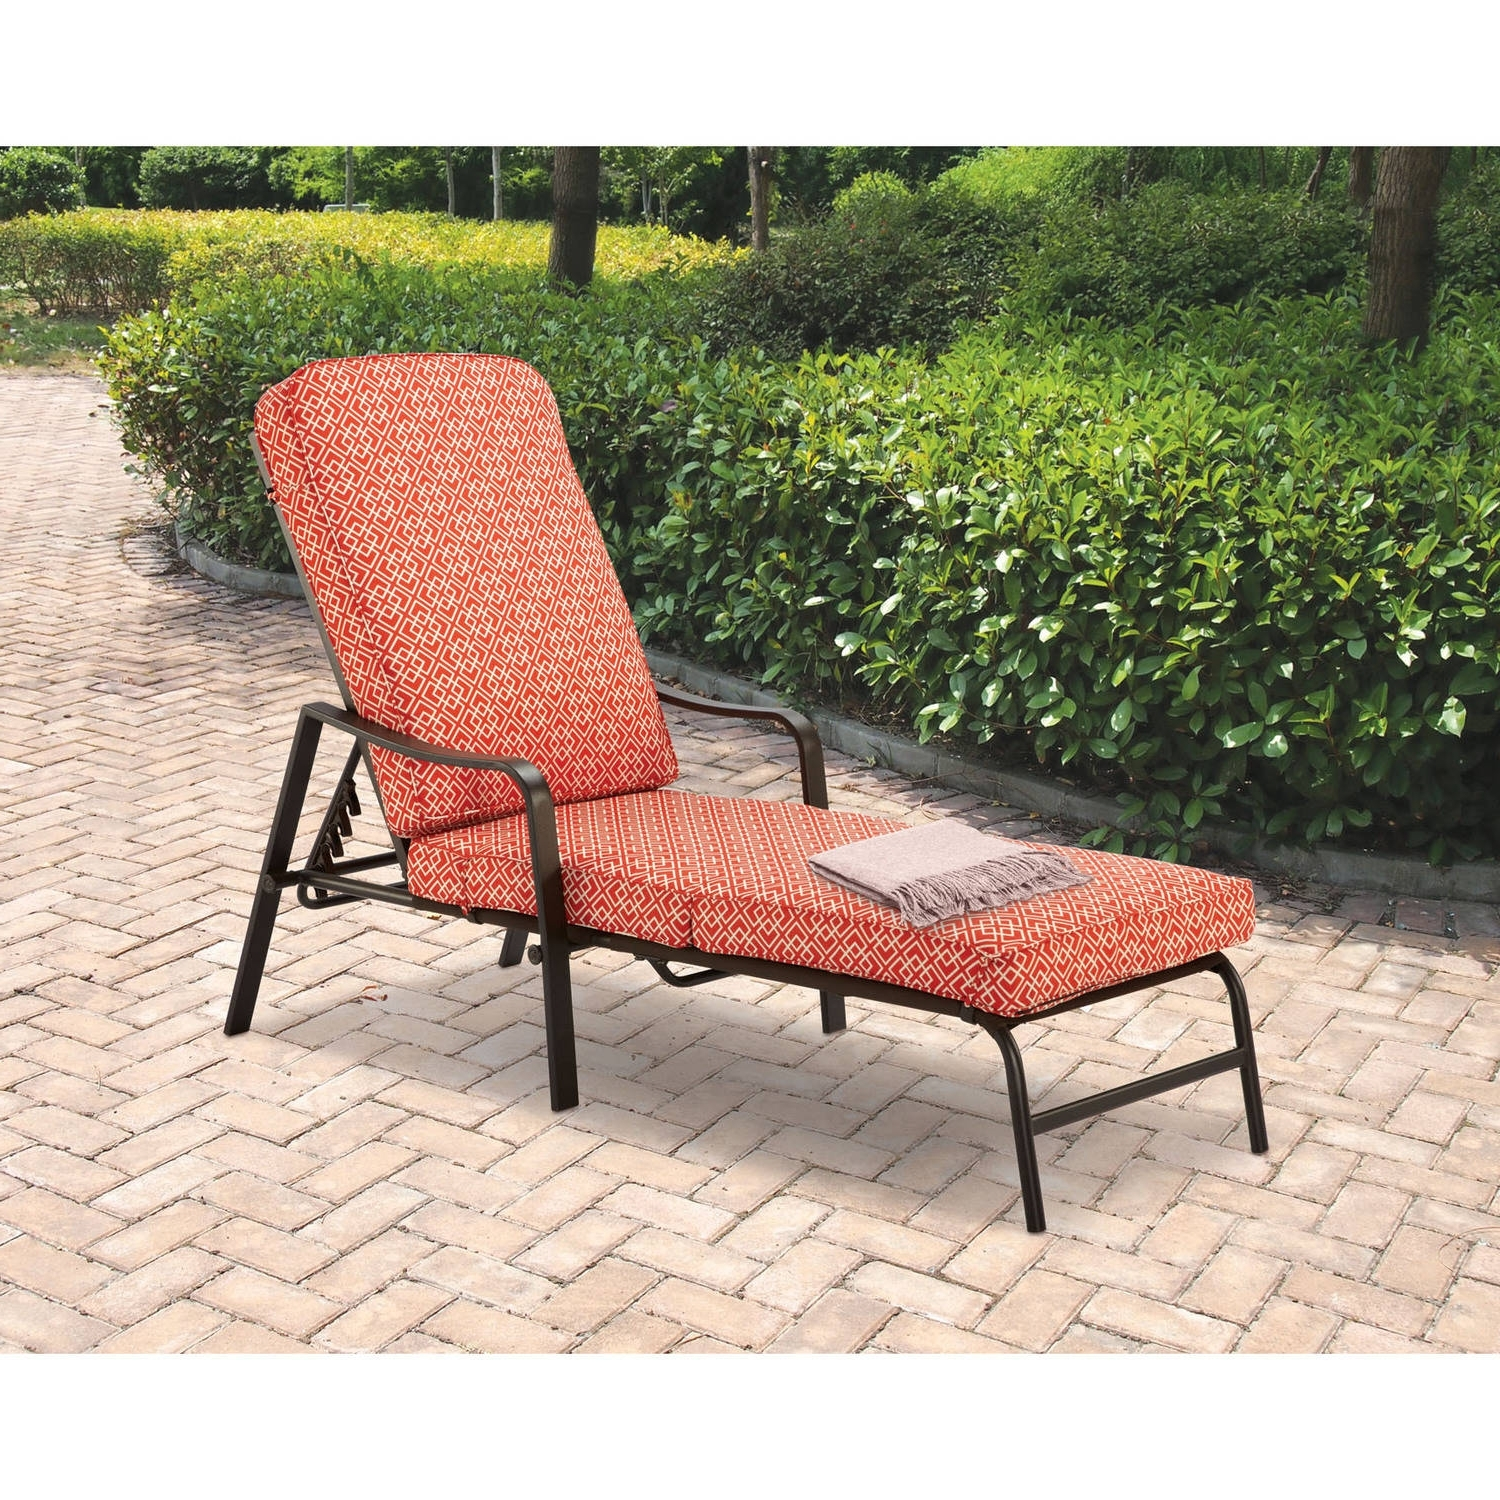 Popular Mainstays Outdoor Chaise Lounge, Orange Geo Pattern – Walmart Intended For Walmart Chaises (View 7 of 15)